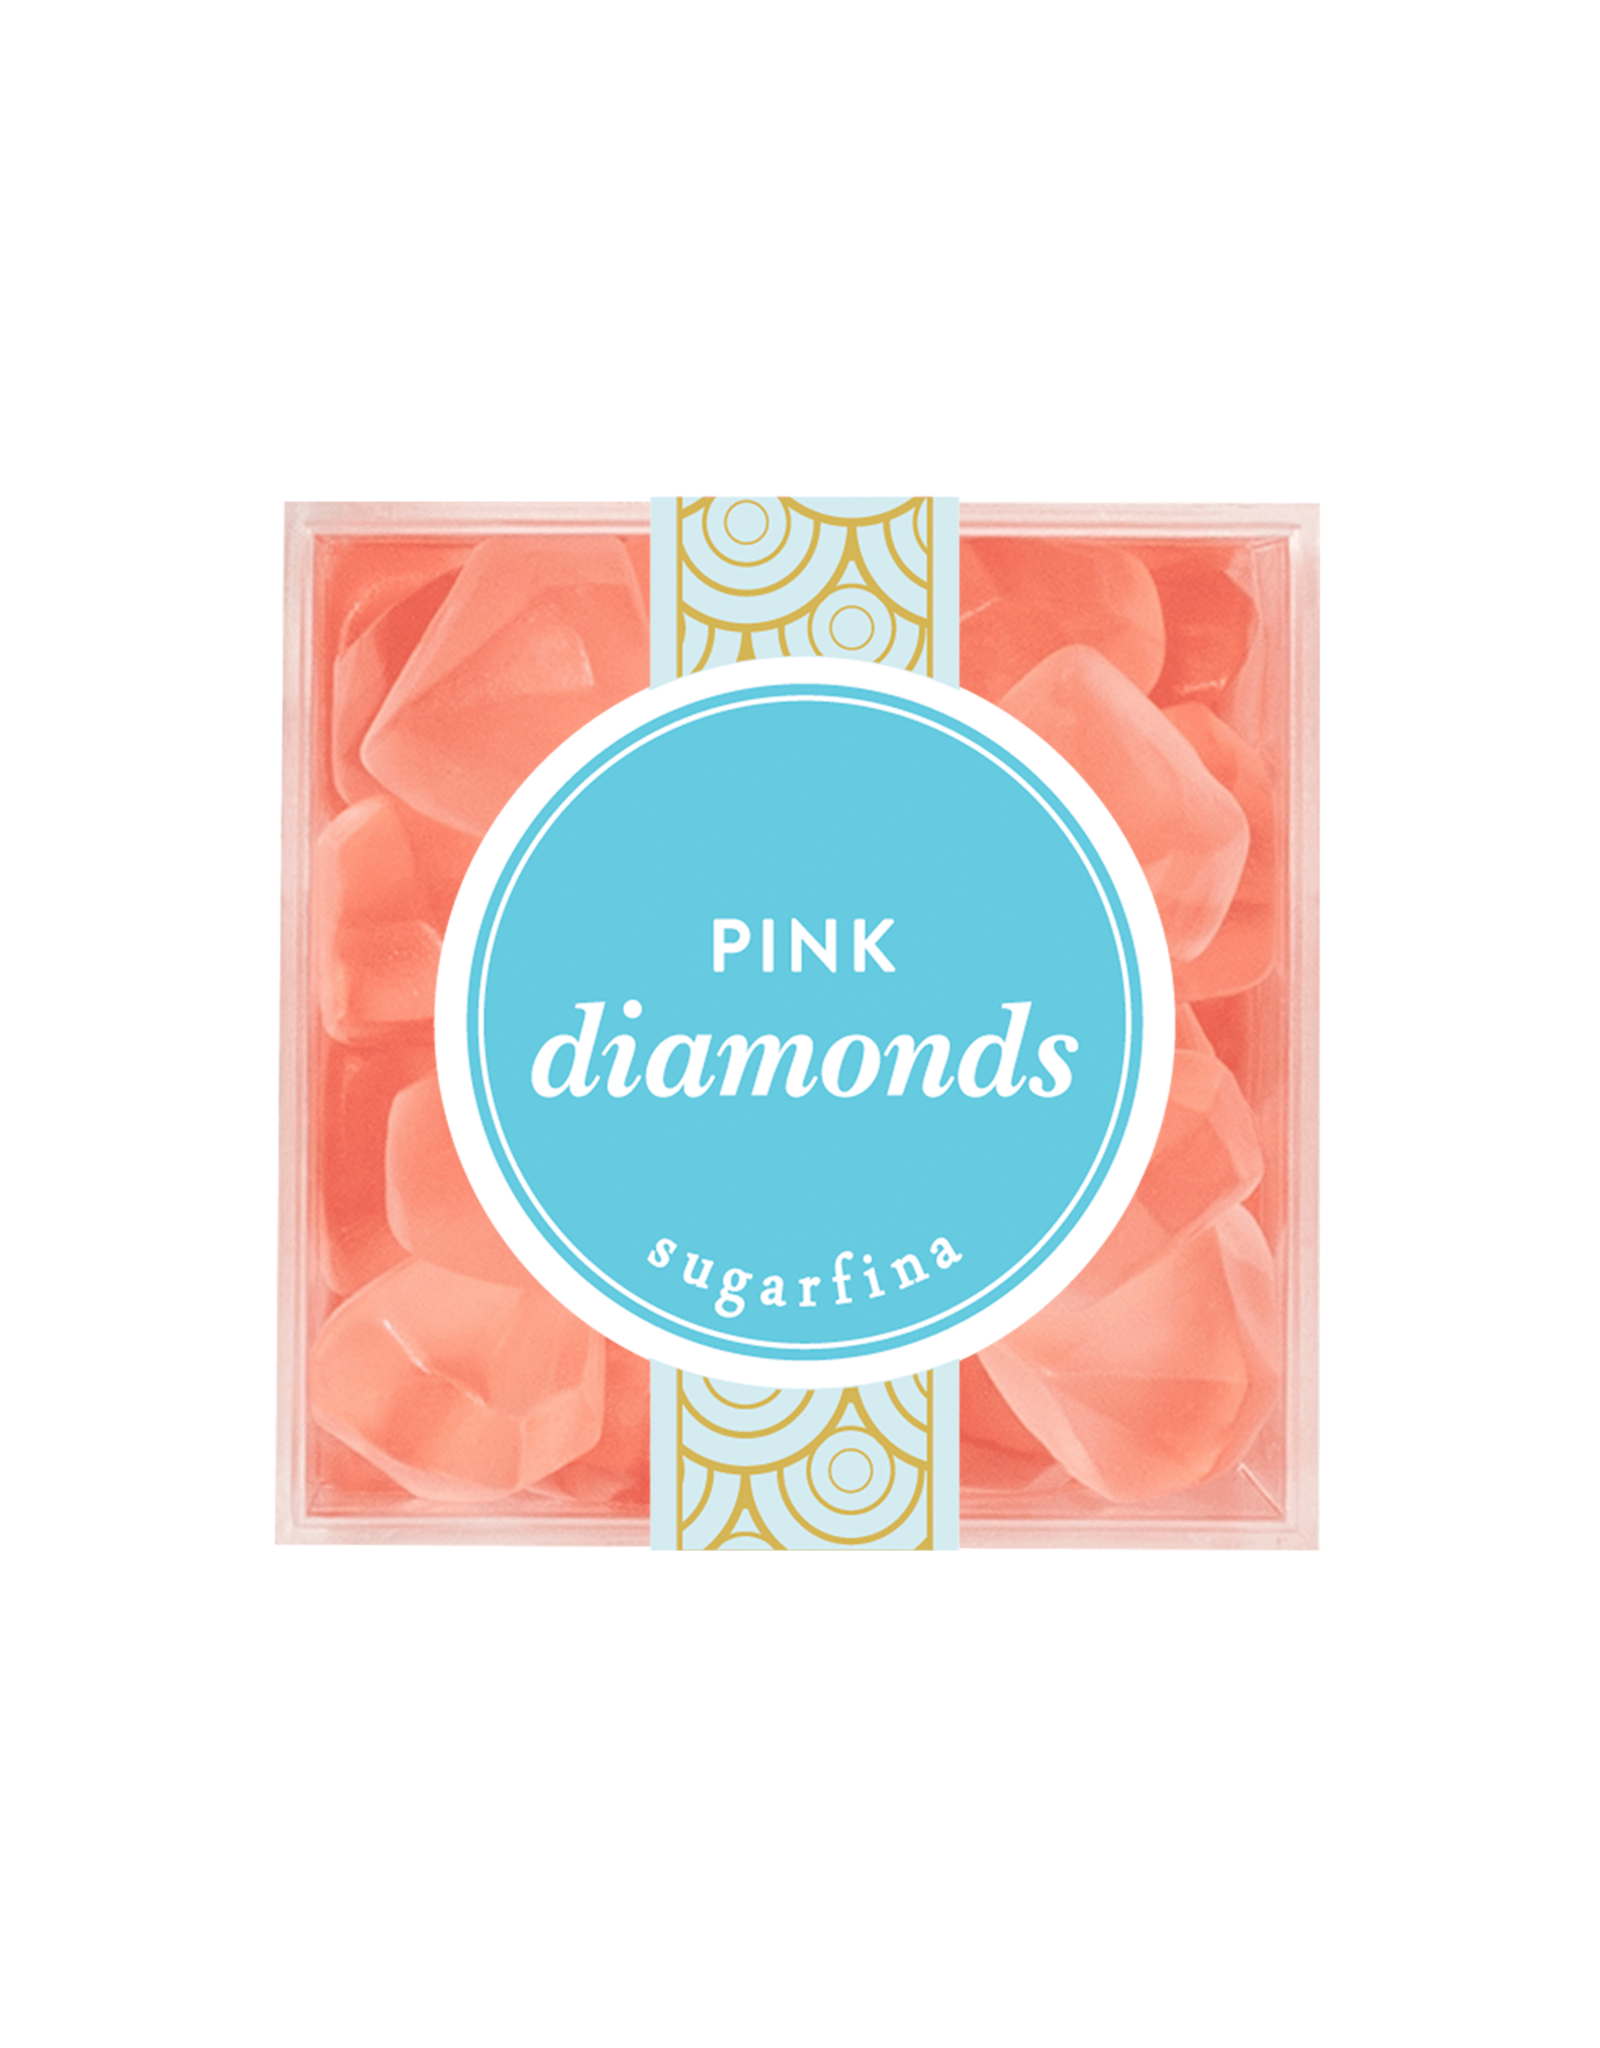 Sugarfina Pink Diamonds